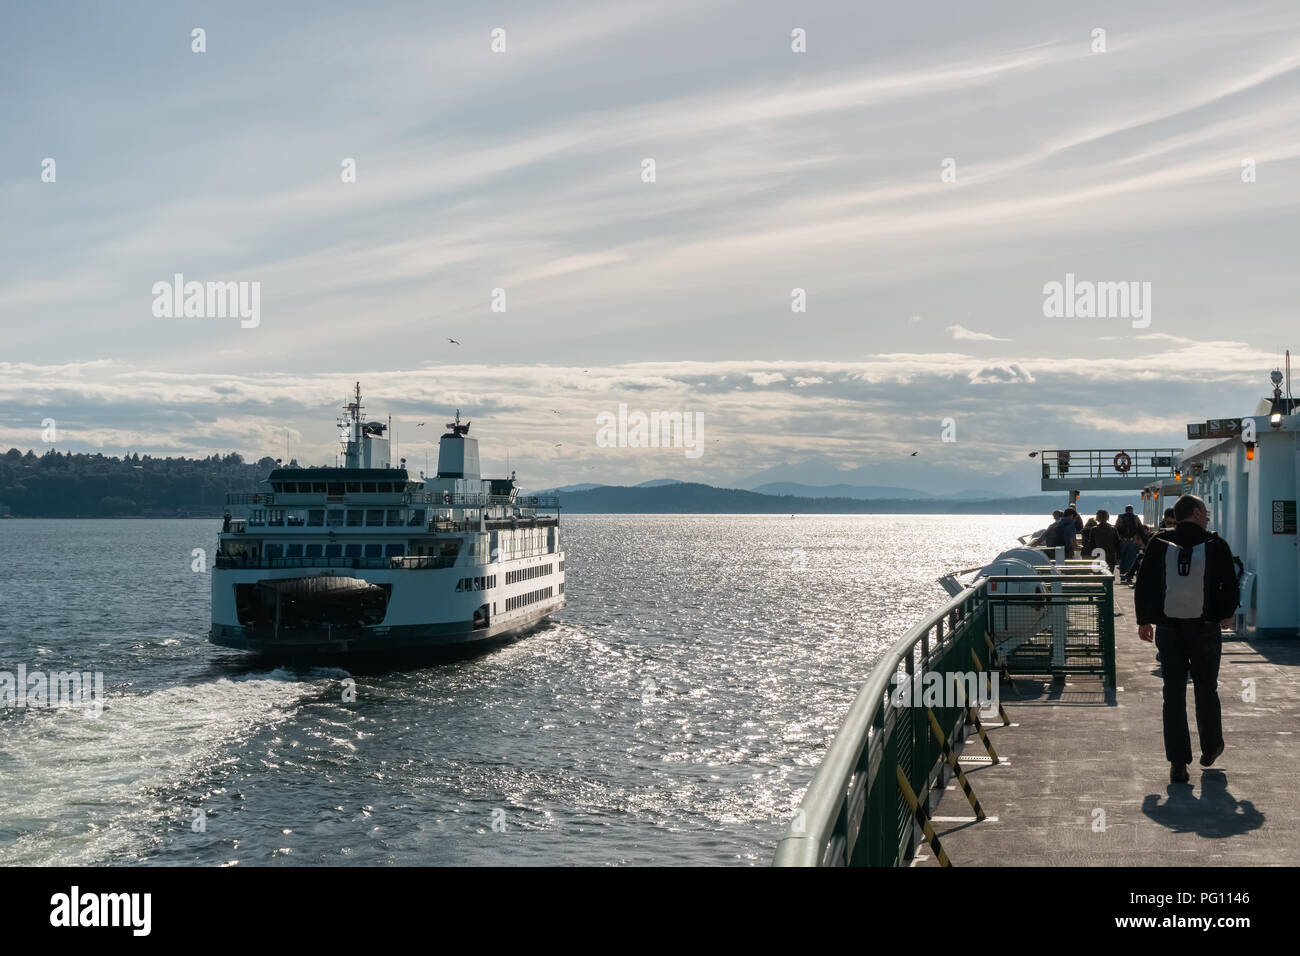 Washington state ferry boat on the Puget on late afternoon after having left the Seattle terminal, USA. - Stock Image